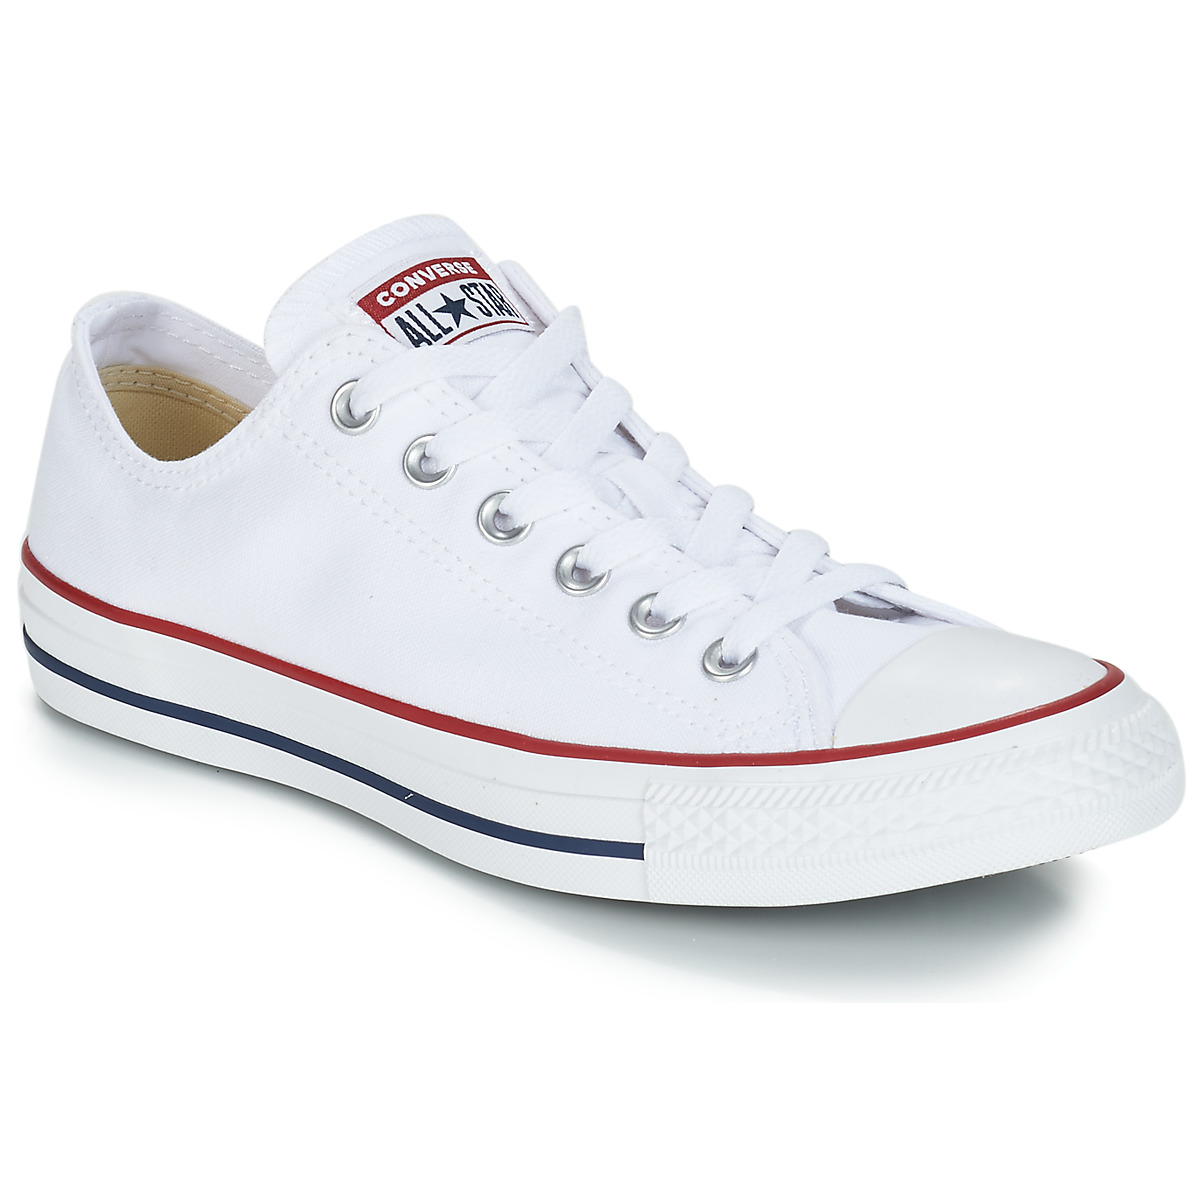 Chaussures Converse All Star Casual femme vtc9F